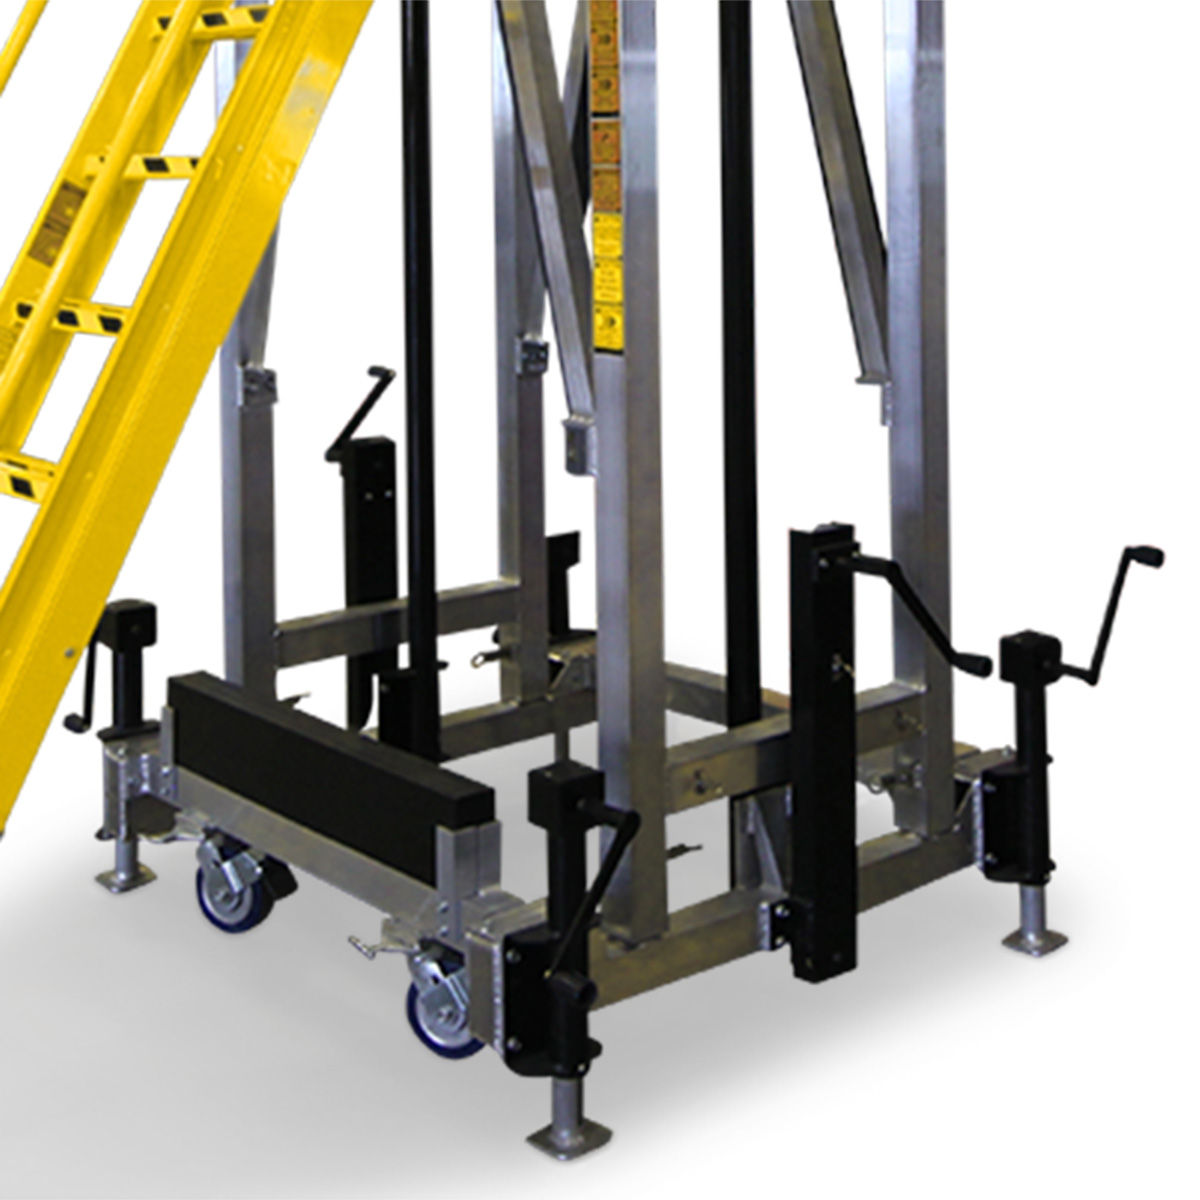 CH-47 Chinook Helicopter – Daily Maintenance OSHA compliant, height-adjustable aluminum work stand with linked jacks requiring 50% less labor to raise and lower.